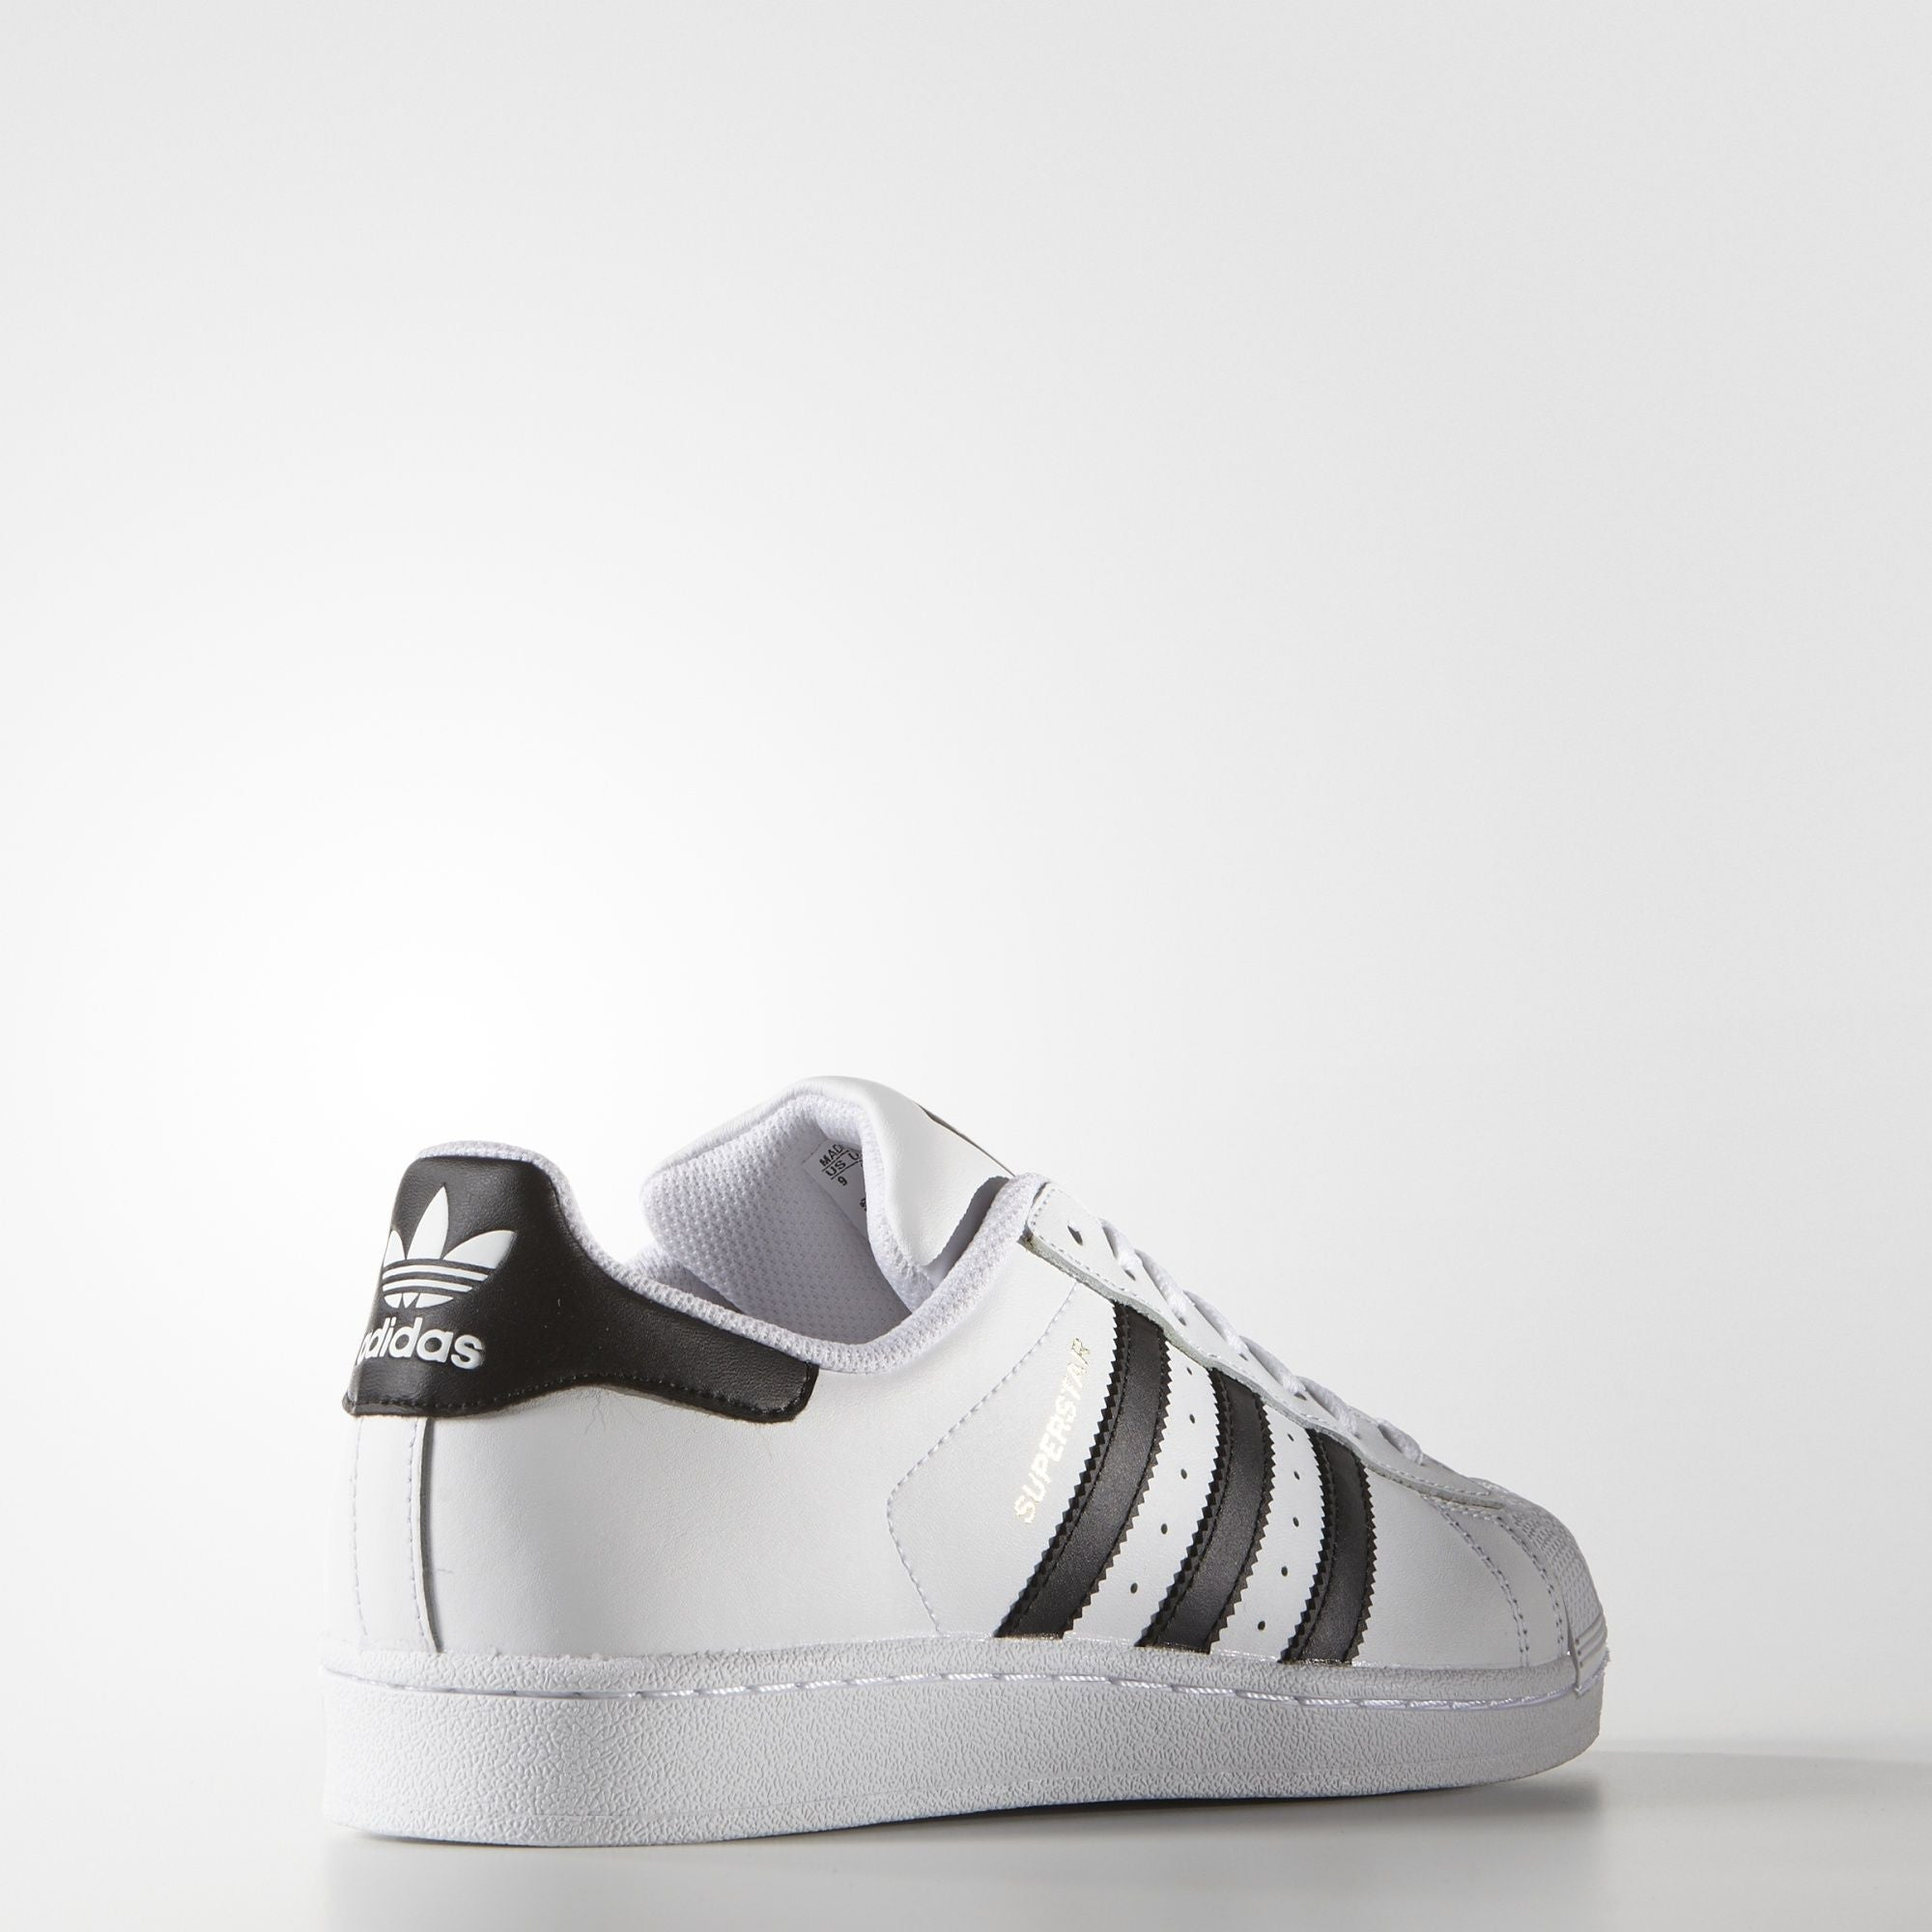 big sale 77dcb 14b05 Adidas - Superstar Shoes for Women - GABRIEL CHAUSSURES